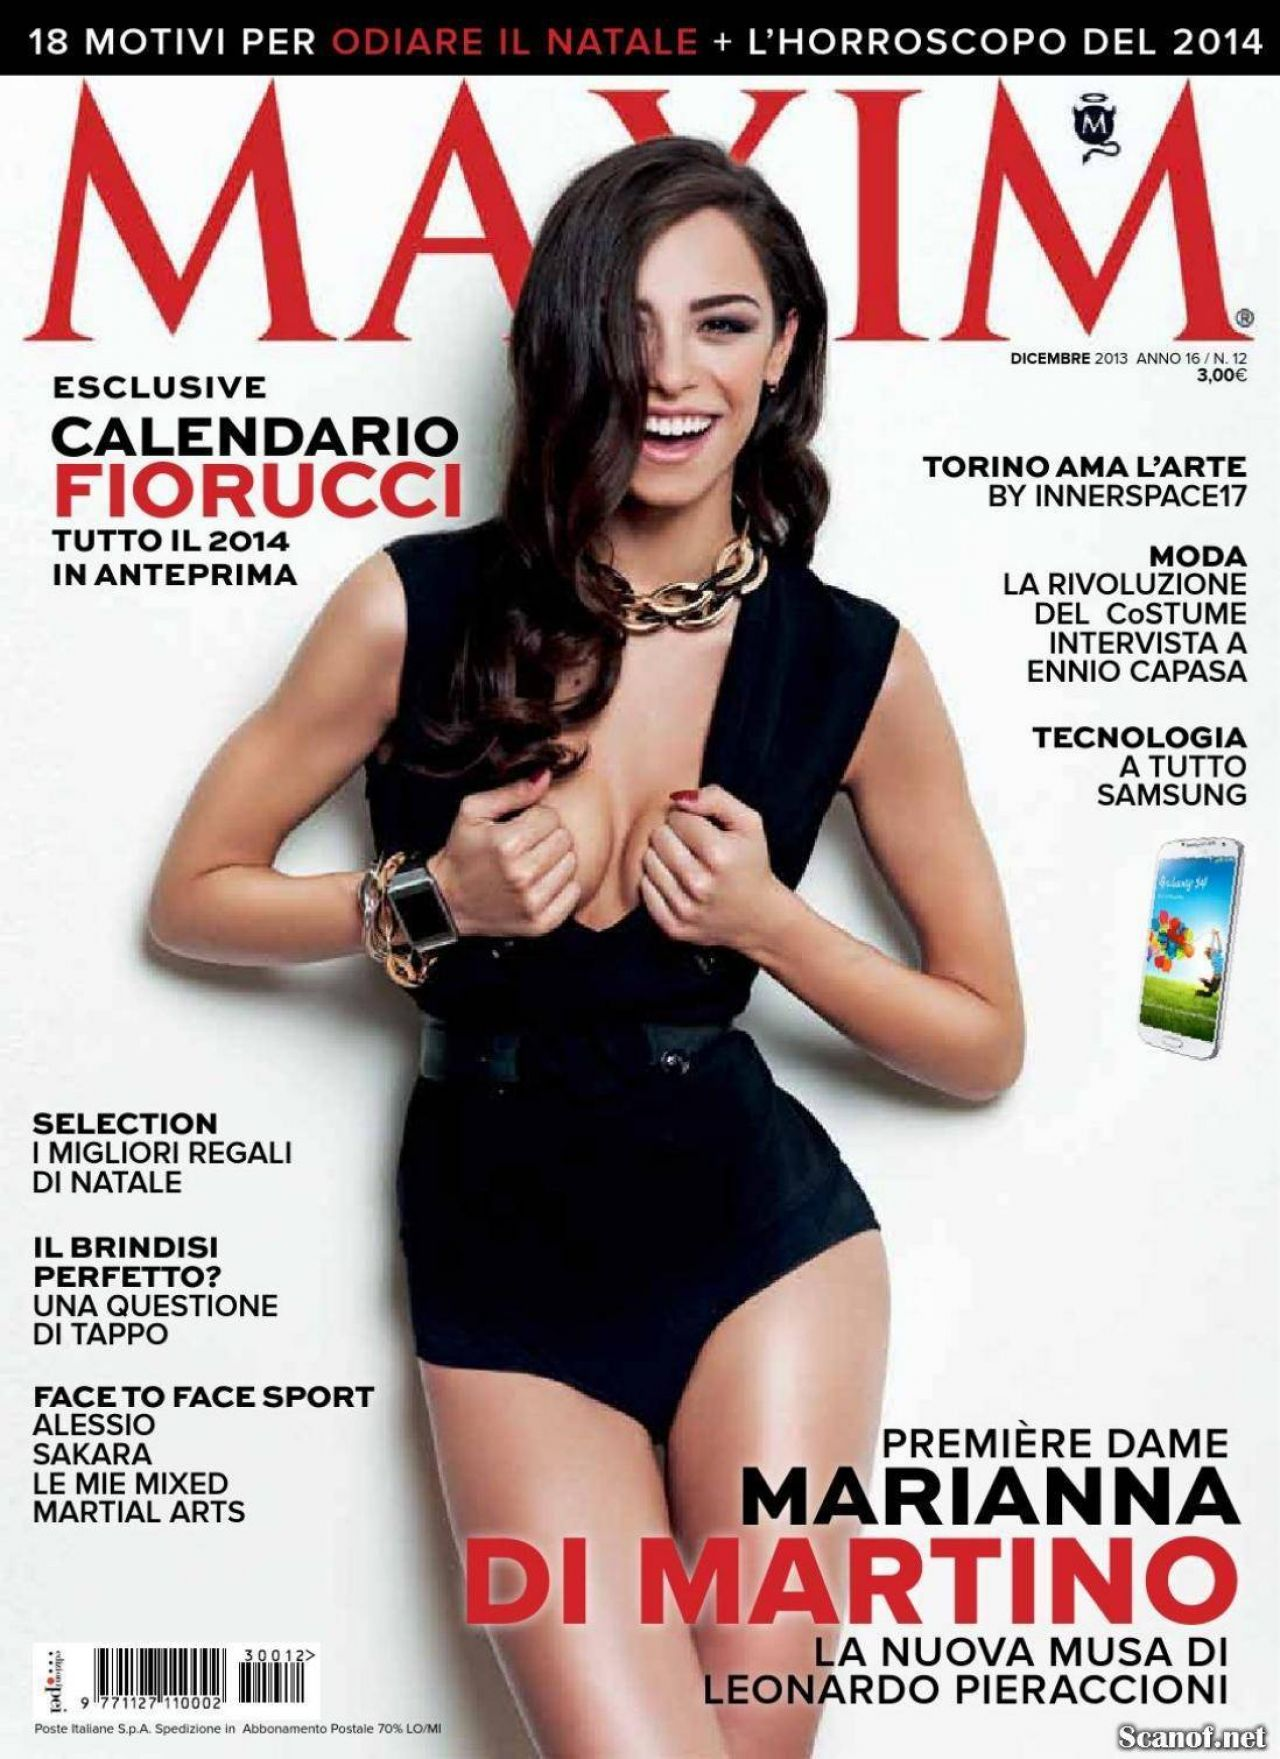 Marianna Di Martino - MAXIM MAgazine - December 2013 Issue